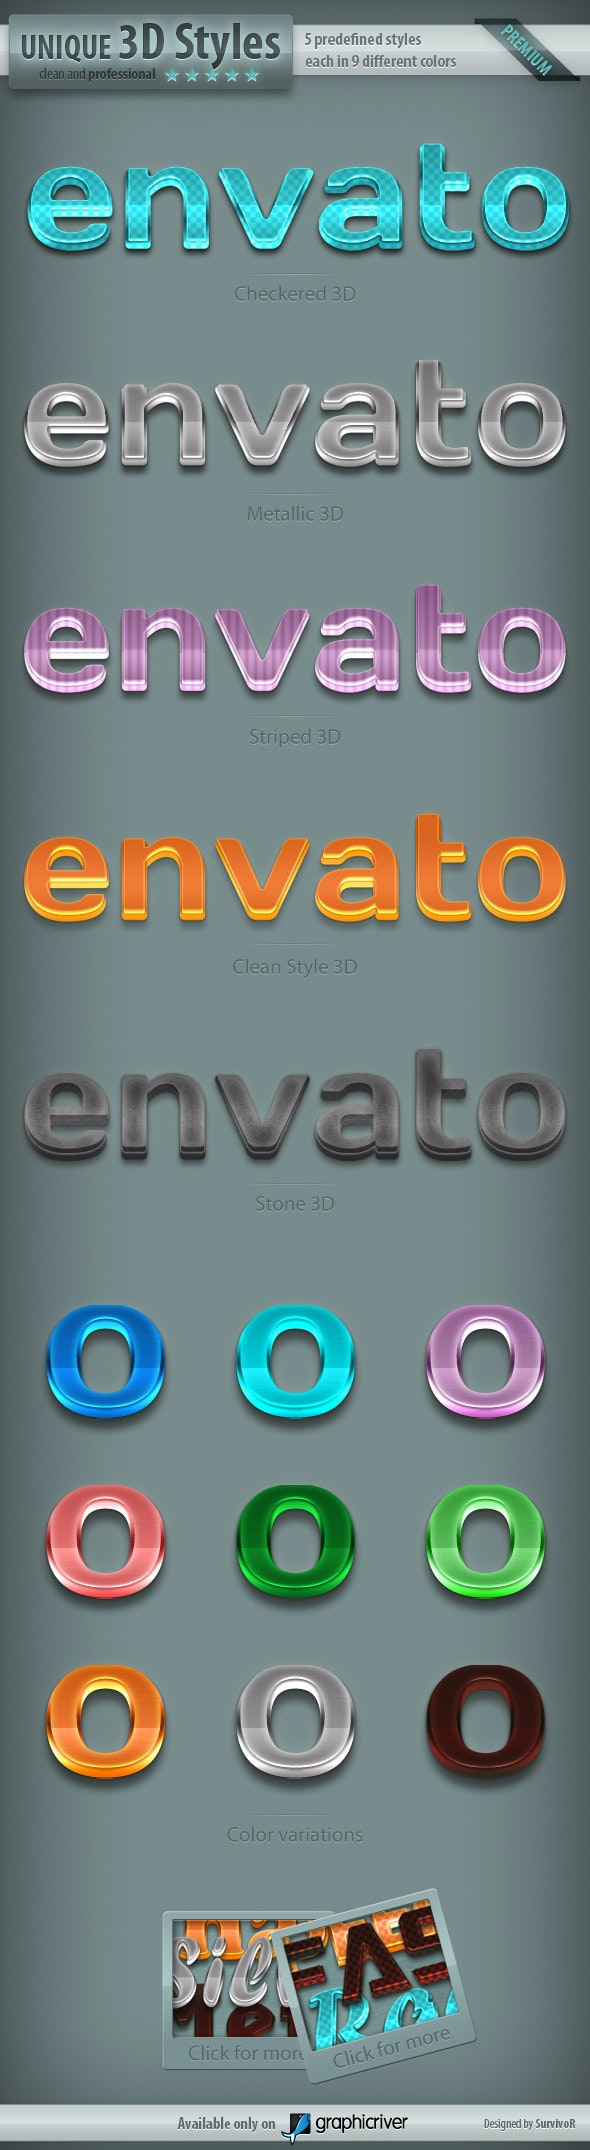 3D Text Styles - Part 2 - Text Effects Styles